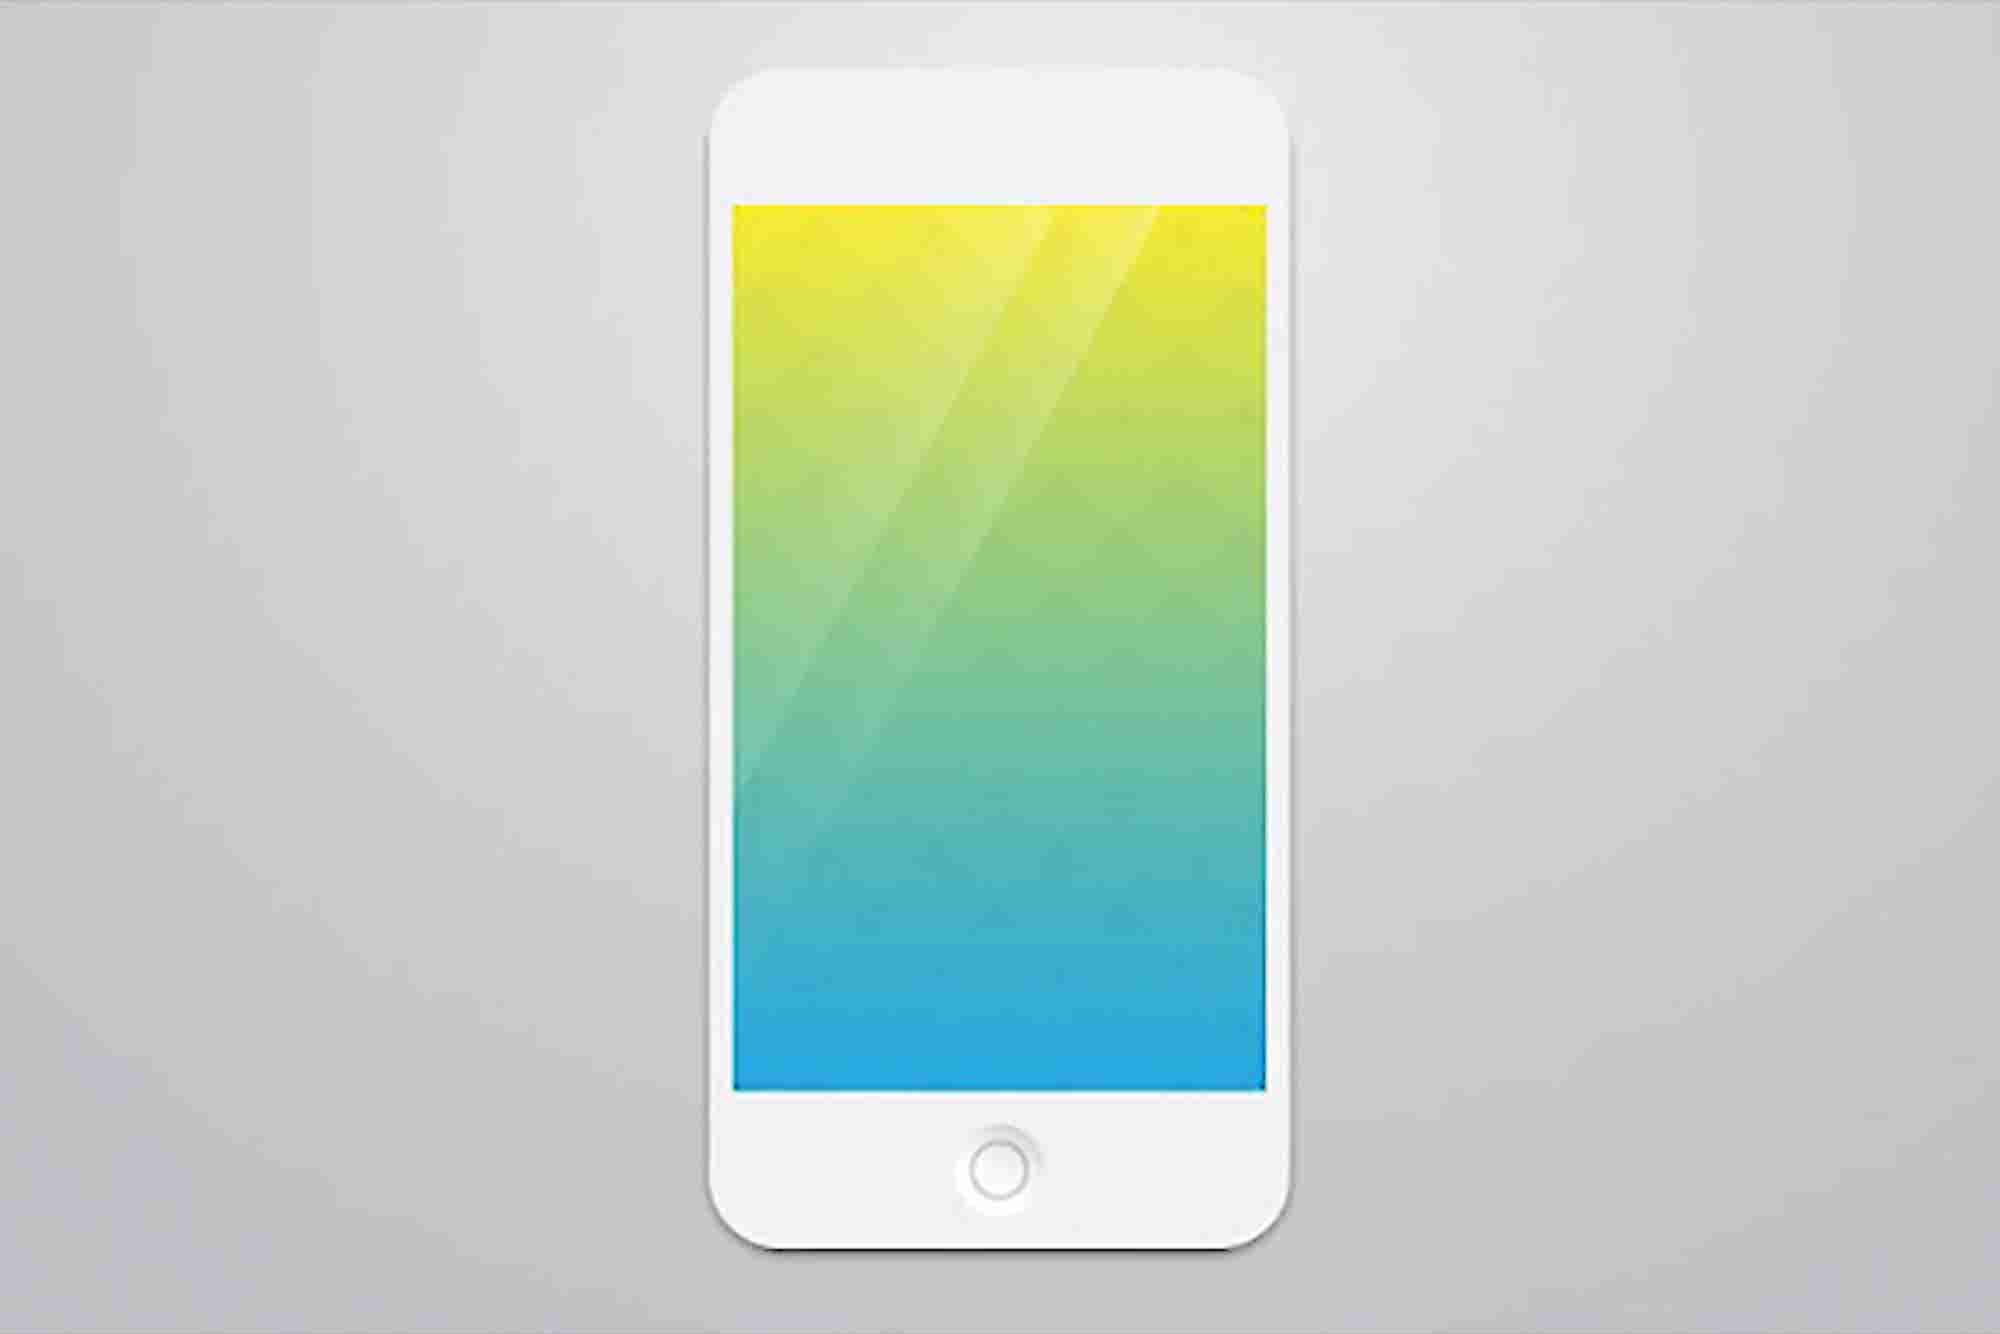 7 Resources That Can Help You Create a Stunning Mobile App Design